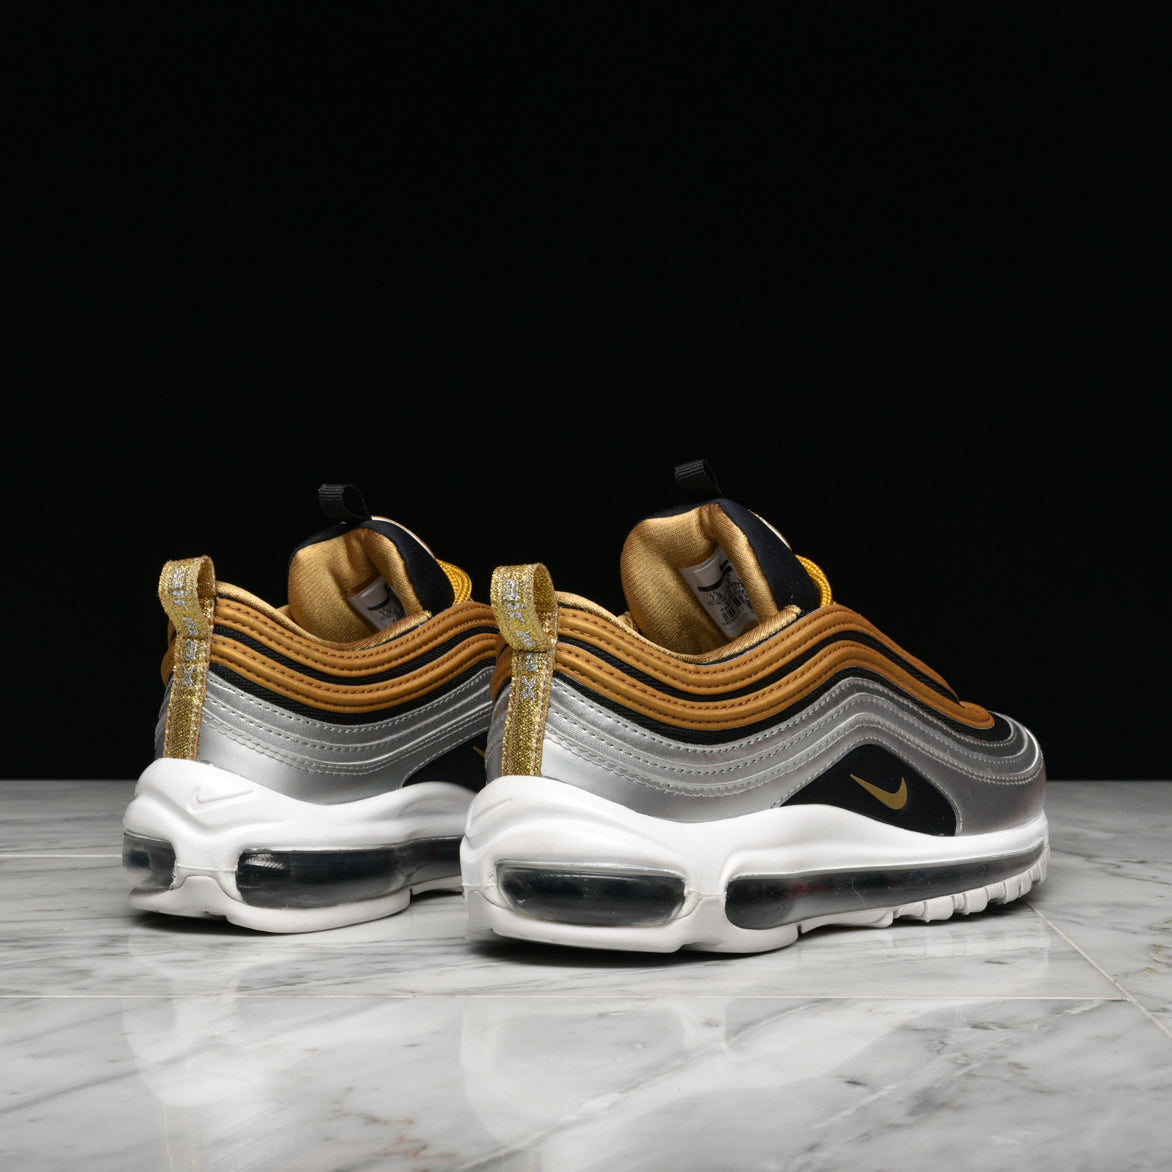 "WMNS AIR MAX 97 SE ""METALLIC GOLD PACK"" - METALLIC GOLD / METALLIC SILVER / BLACK"